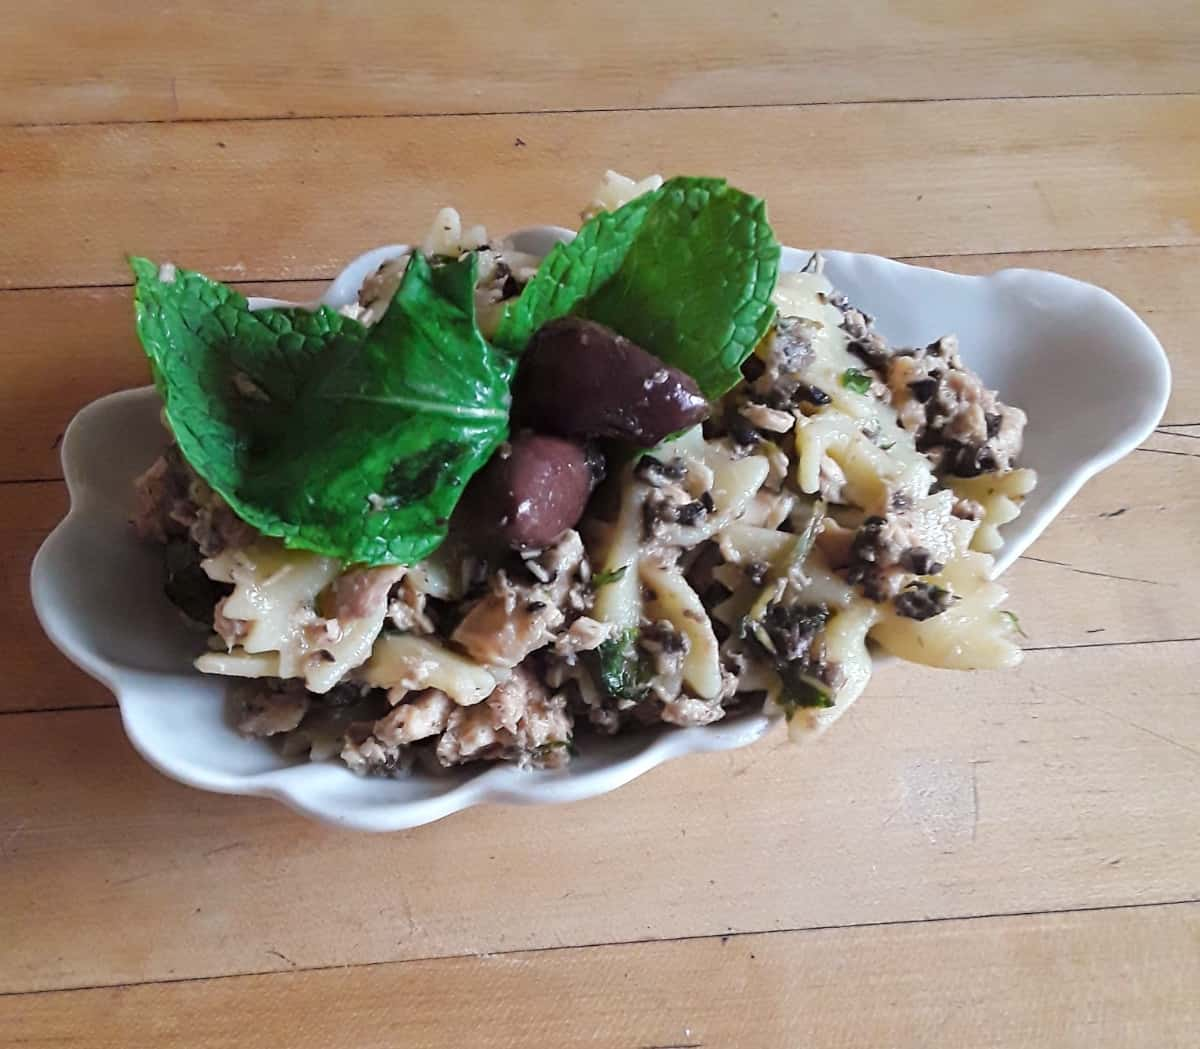 Tuna pasta tapenade salad garnished with fresh mint leaves in white dish on wood table.